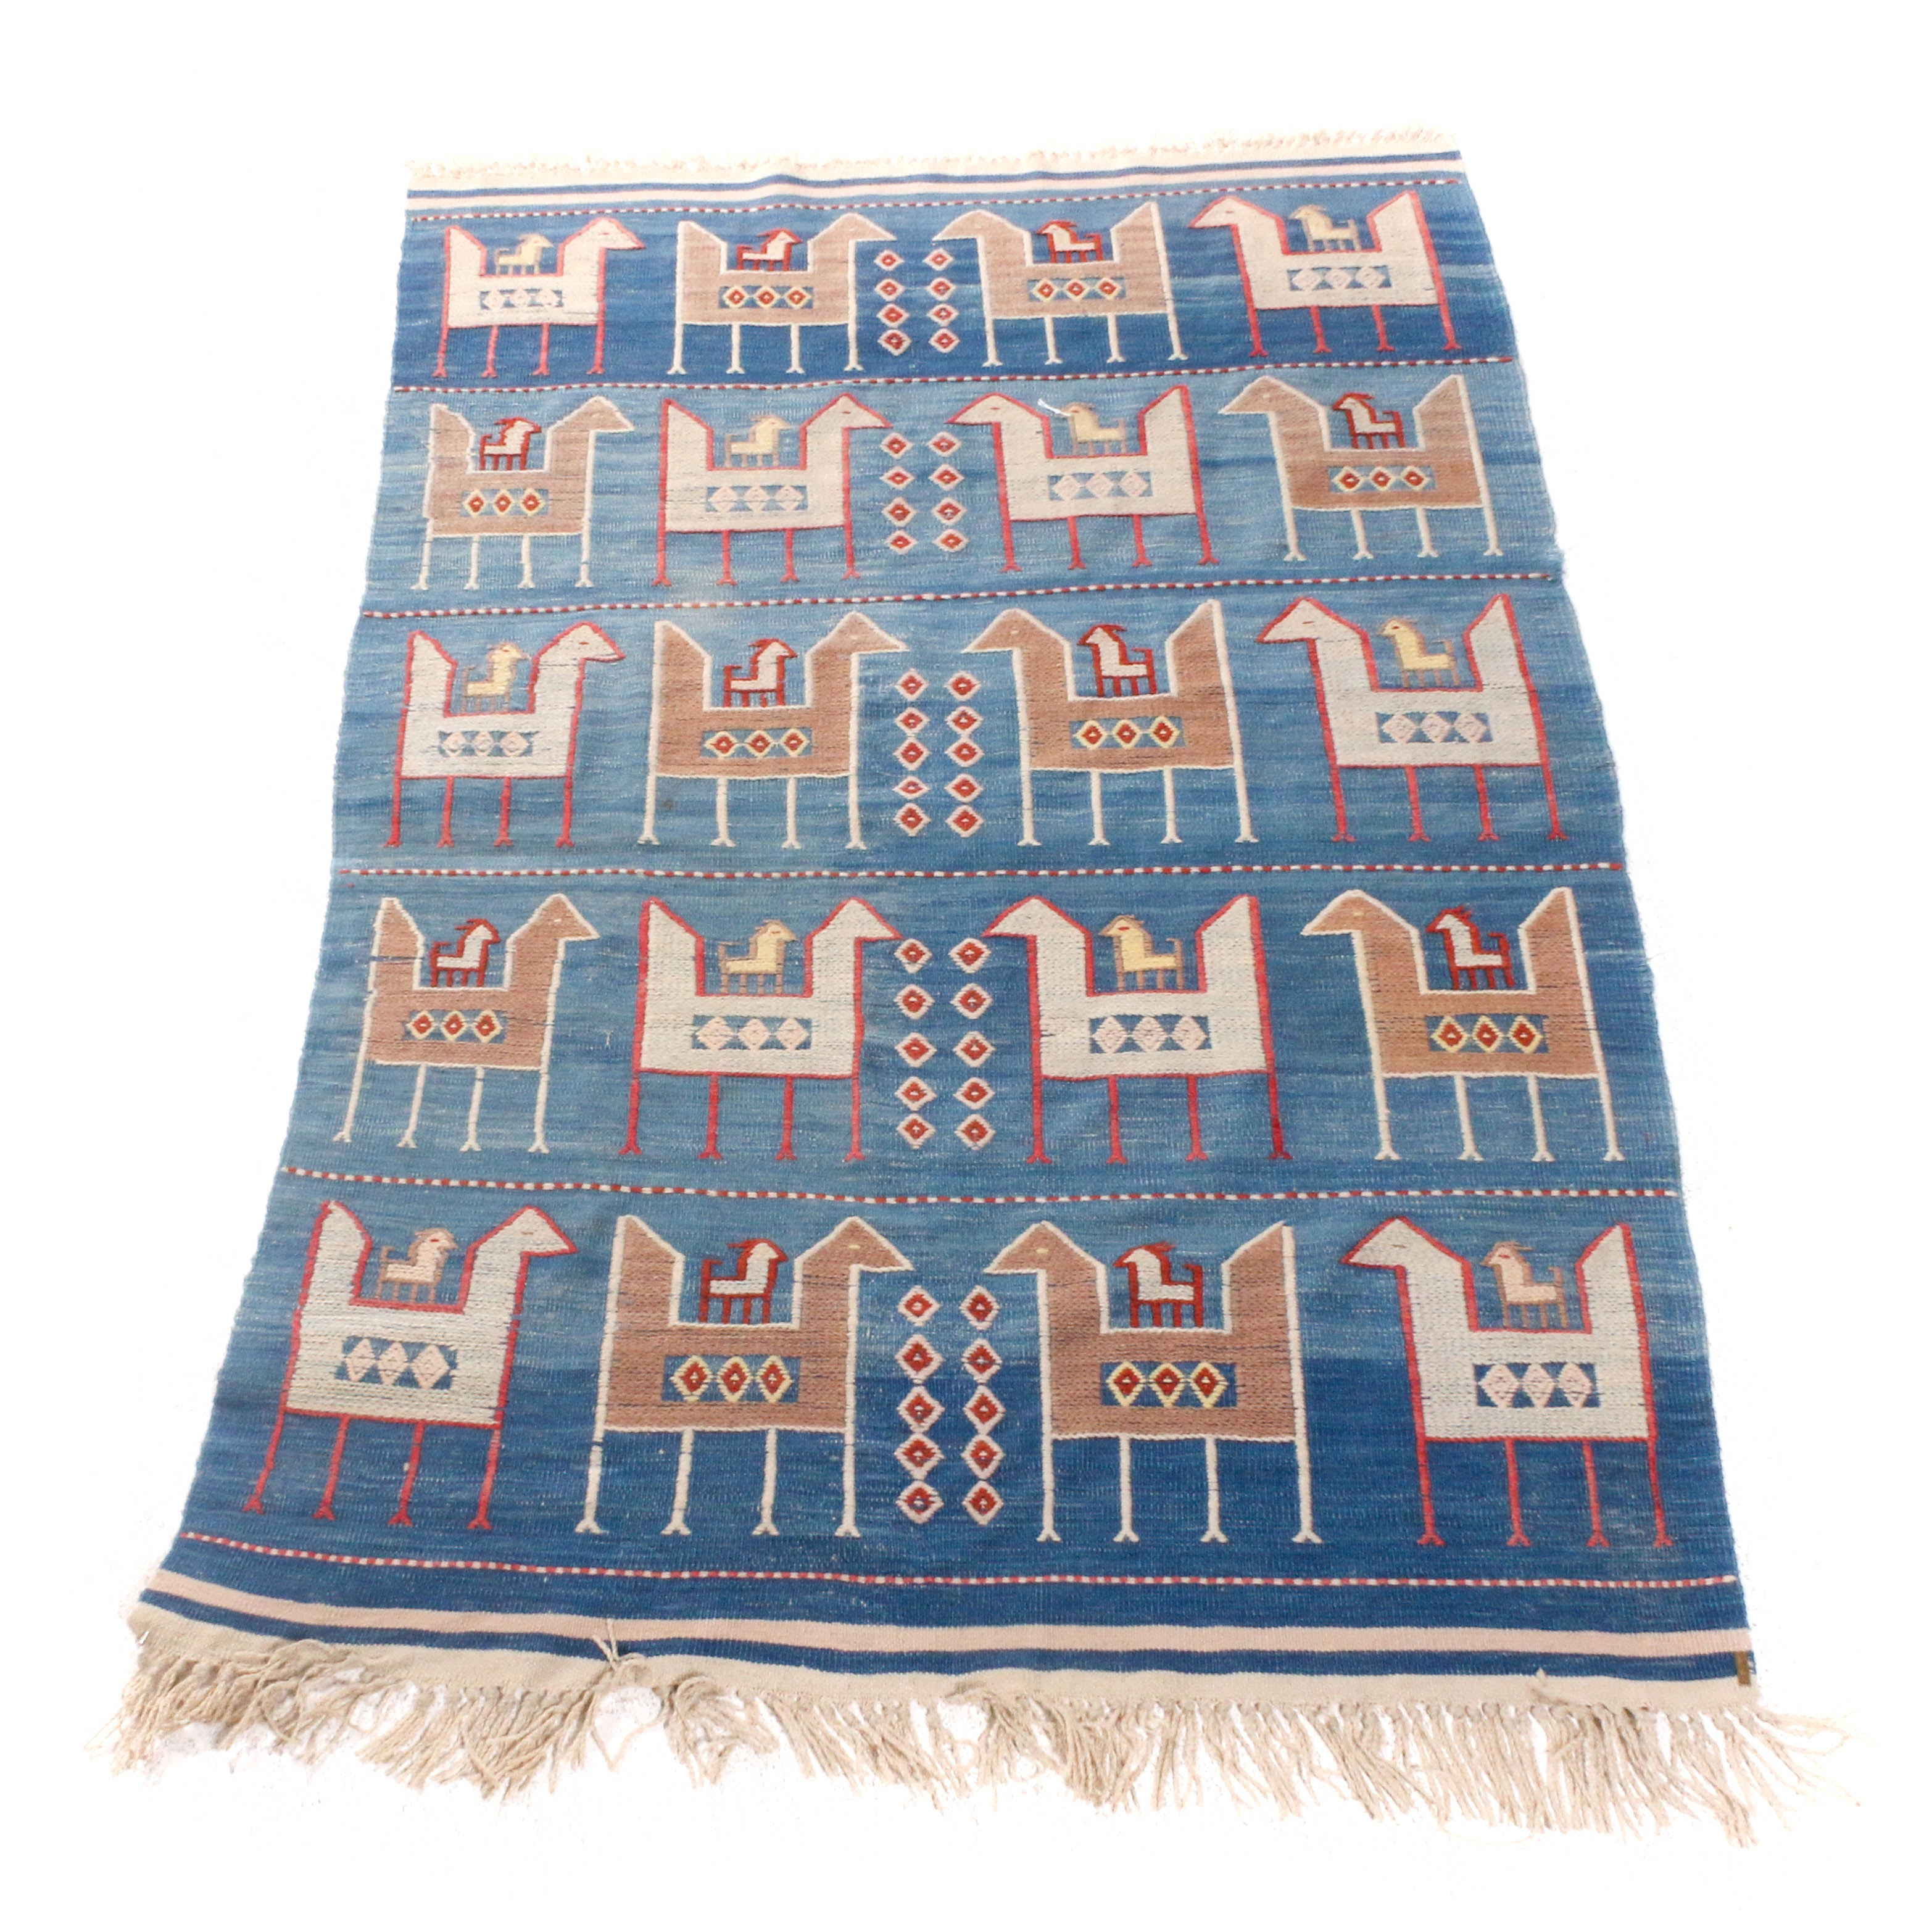 Handwoven and Embroidered Turkish Pictorial Kilim